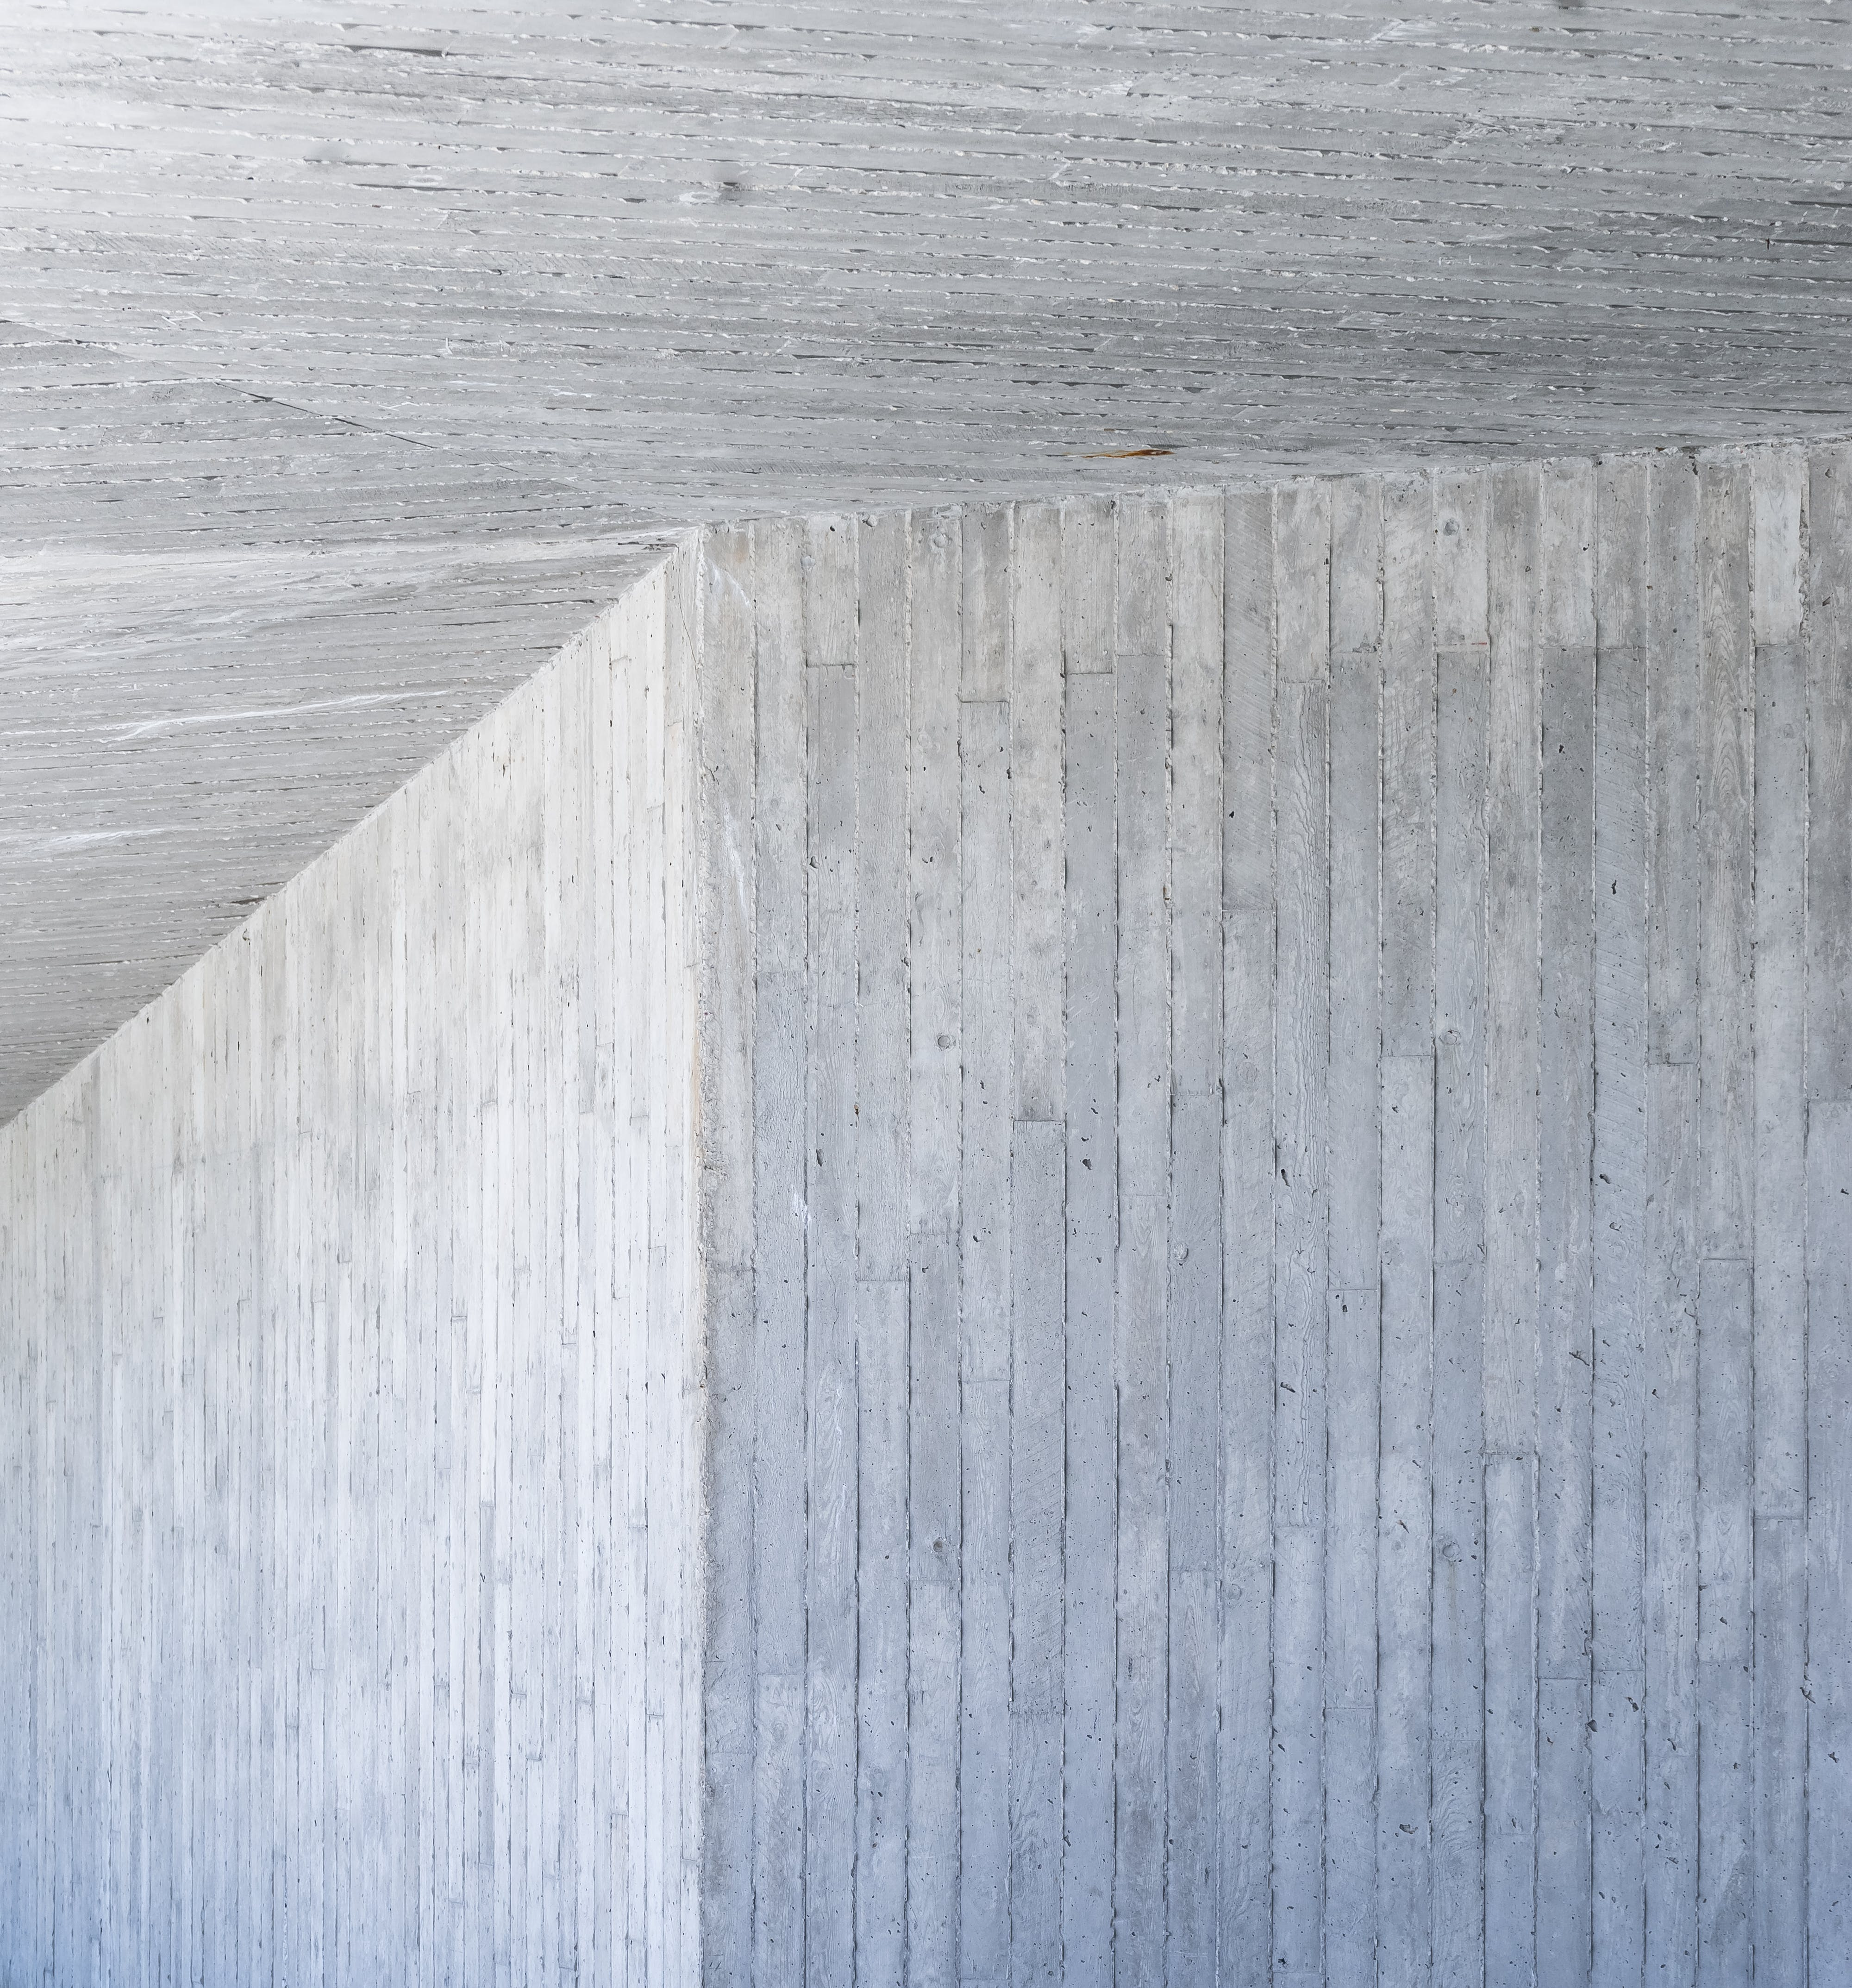 Free stock photo of abstract, architectural, architecture, concrete